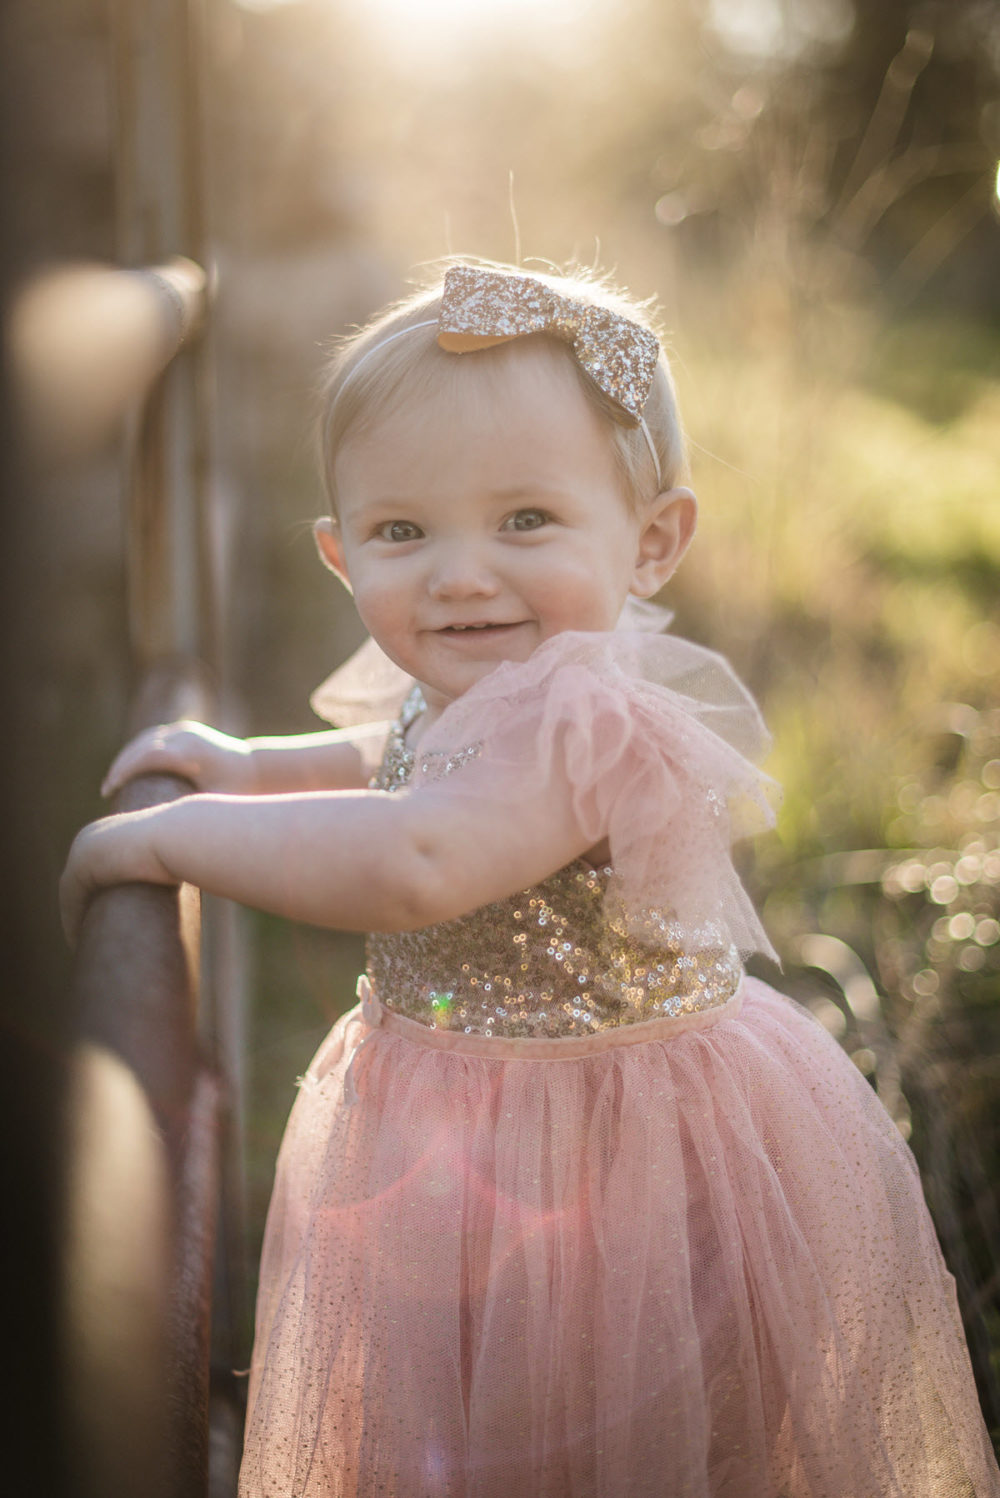 Carly_One_Year_Old_Outdoor_Photos_New_Braunfels_TX-012